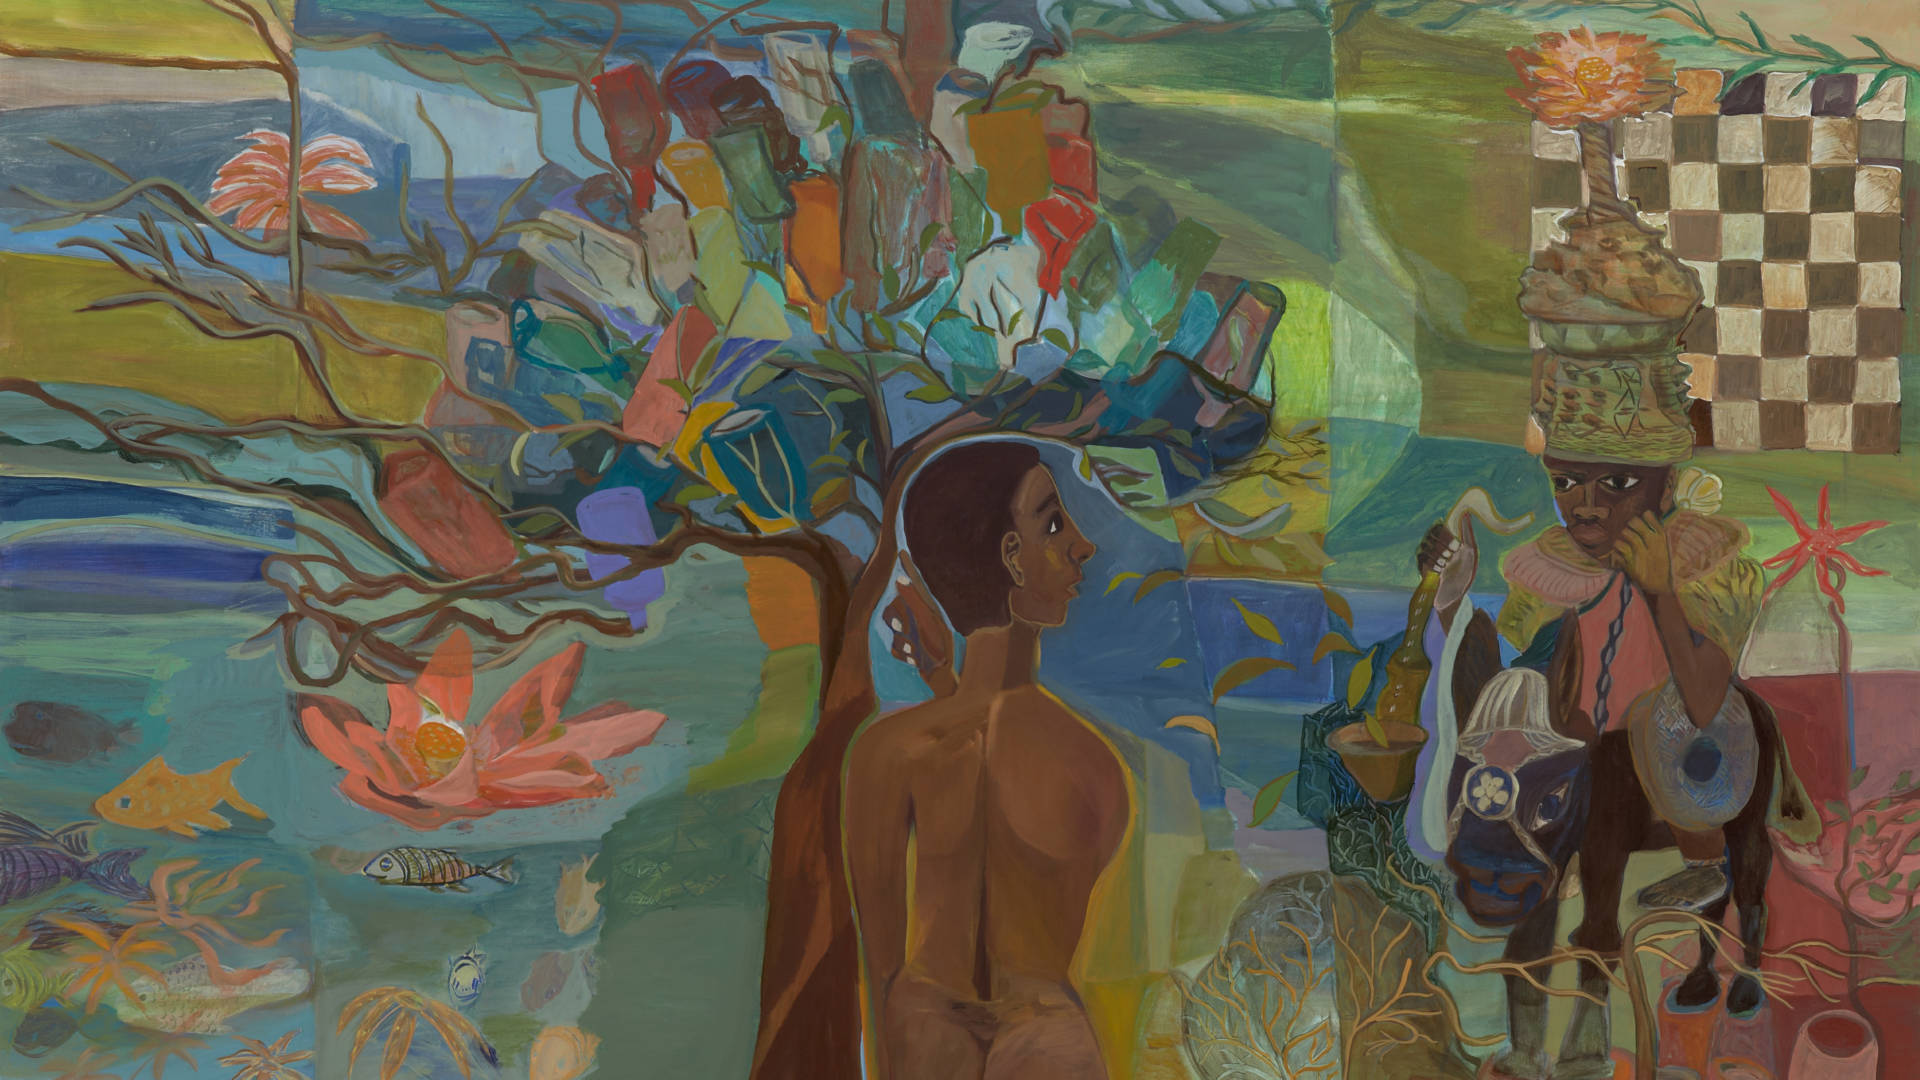 Ficre Ghebreyesus, Detail of 'Nude with Bottle Tree,' 2008. Courtesy of the Estate of Ficre Ghebreyesus